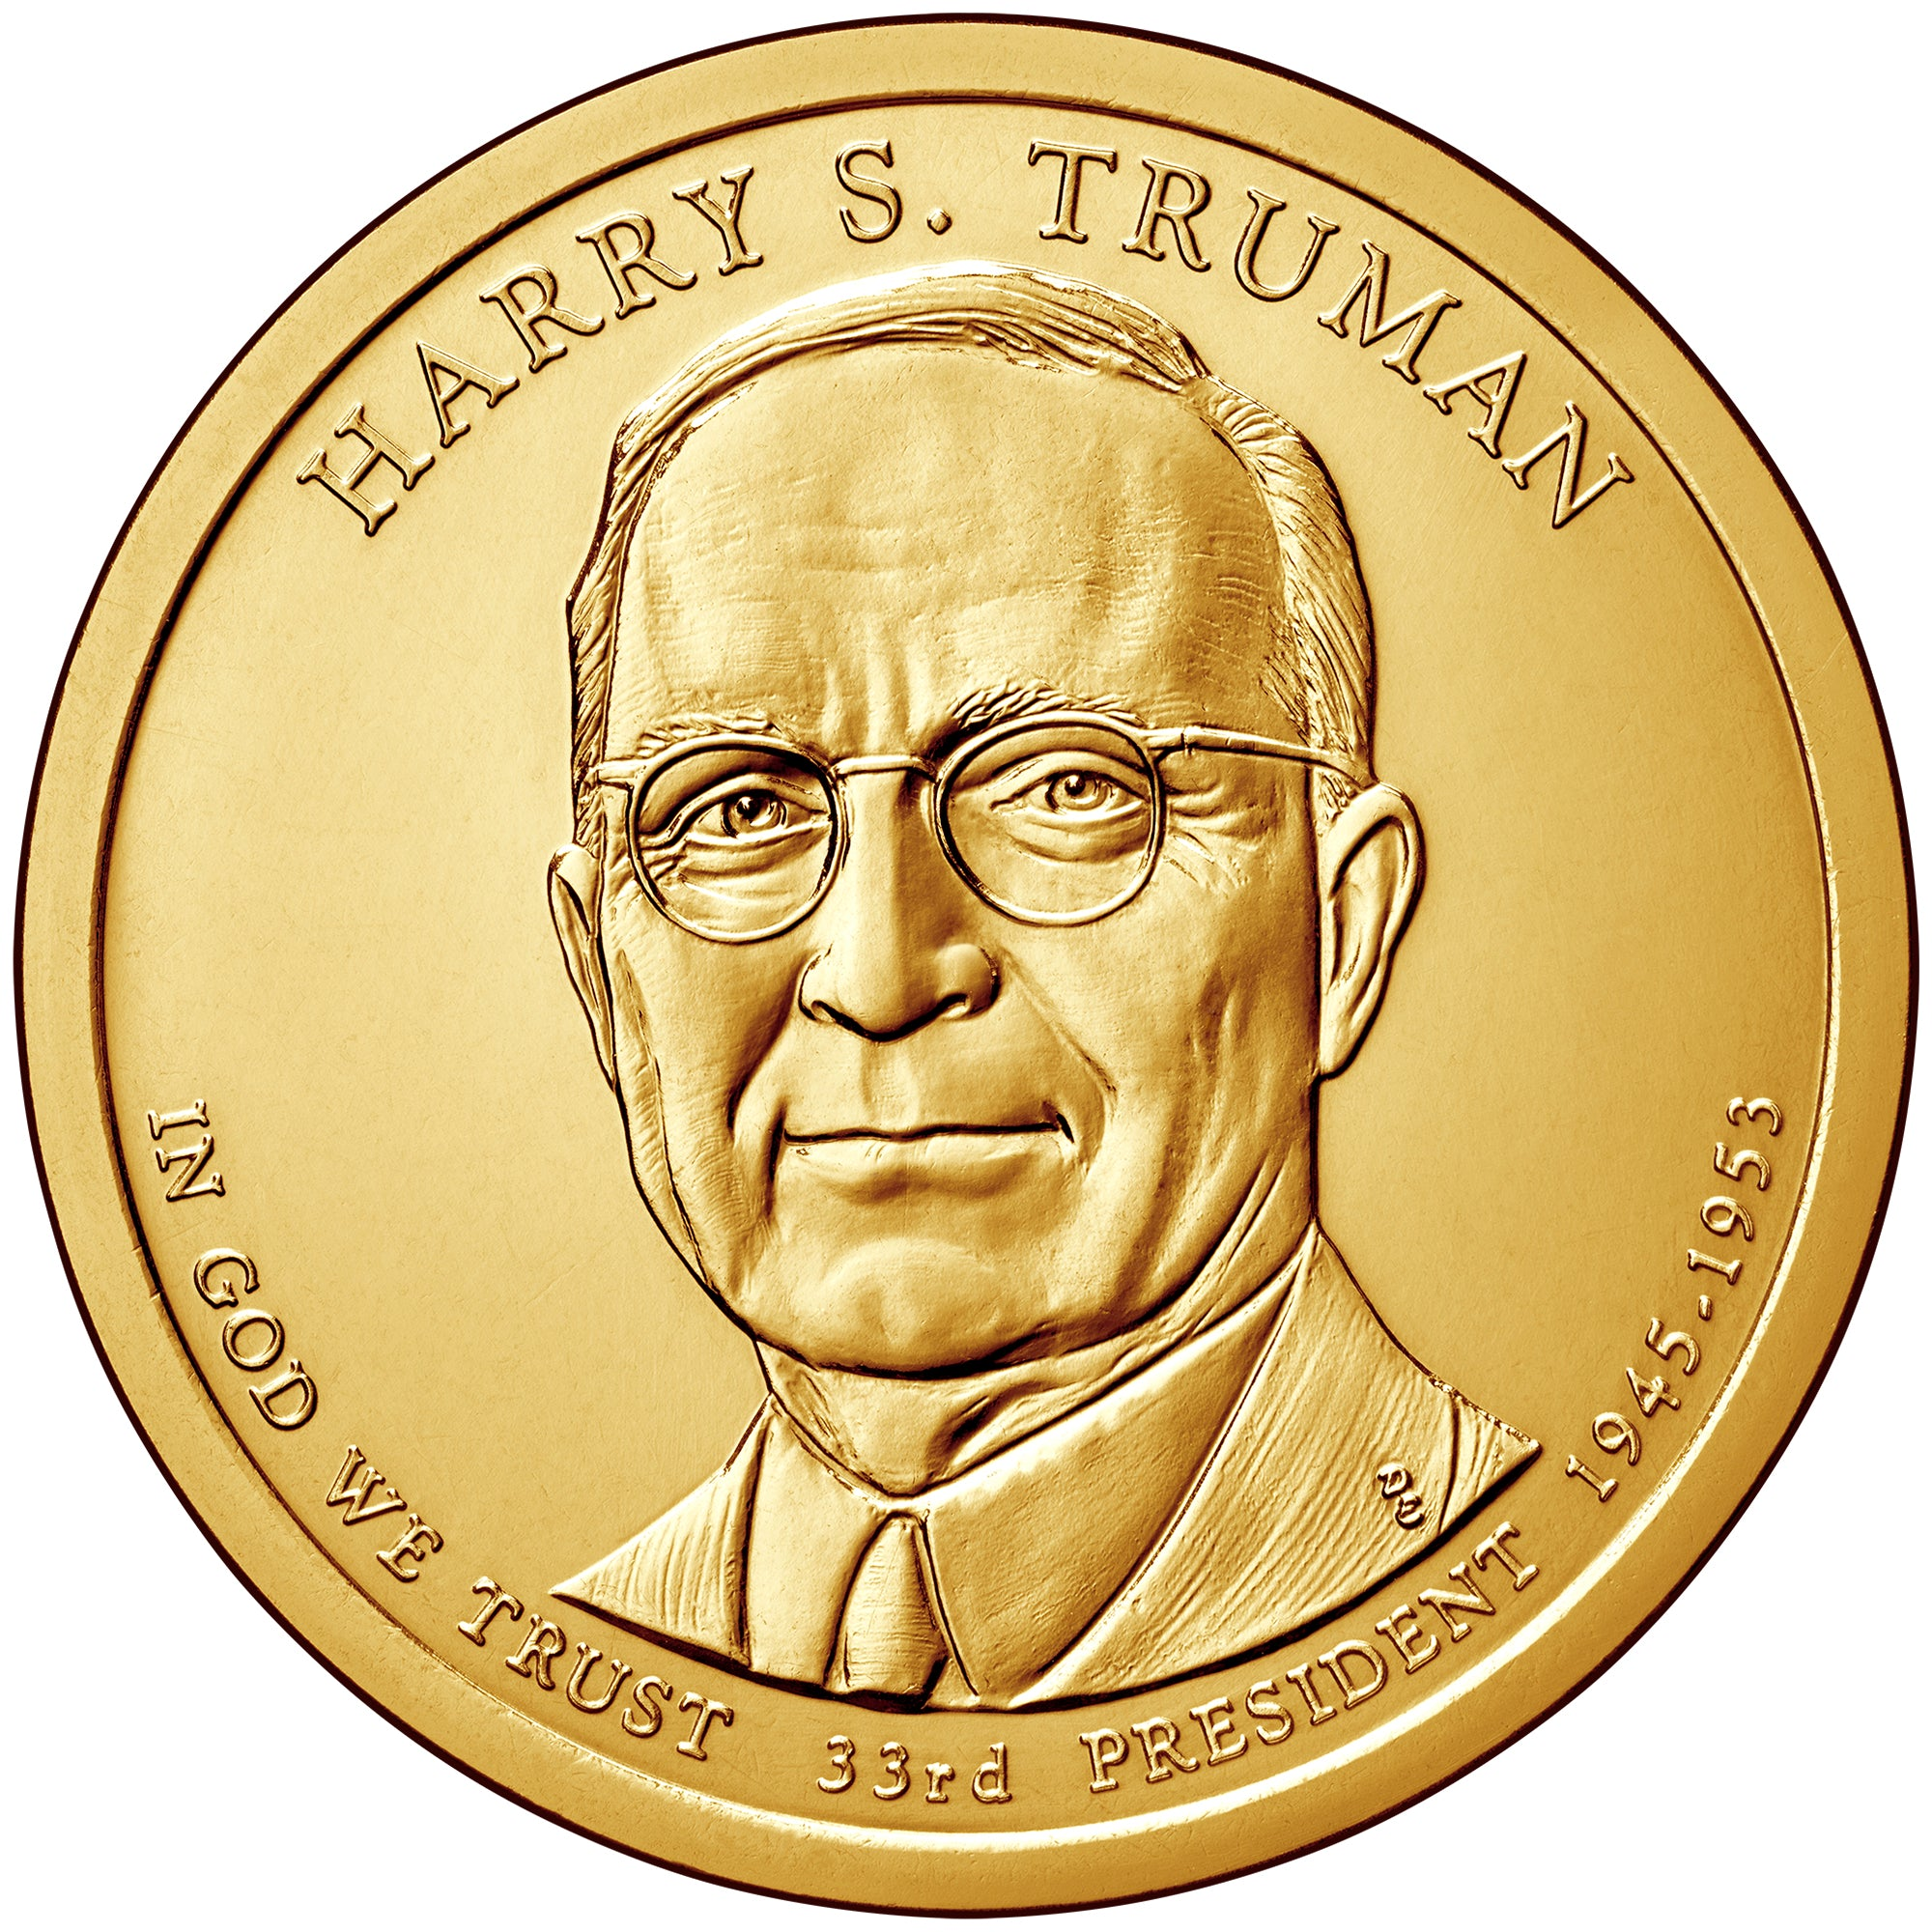 2015 presidential dollars Harry Truman Dwight Eisenhower John F Kennedy Lyndon B Johnson